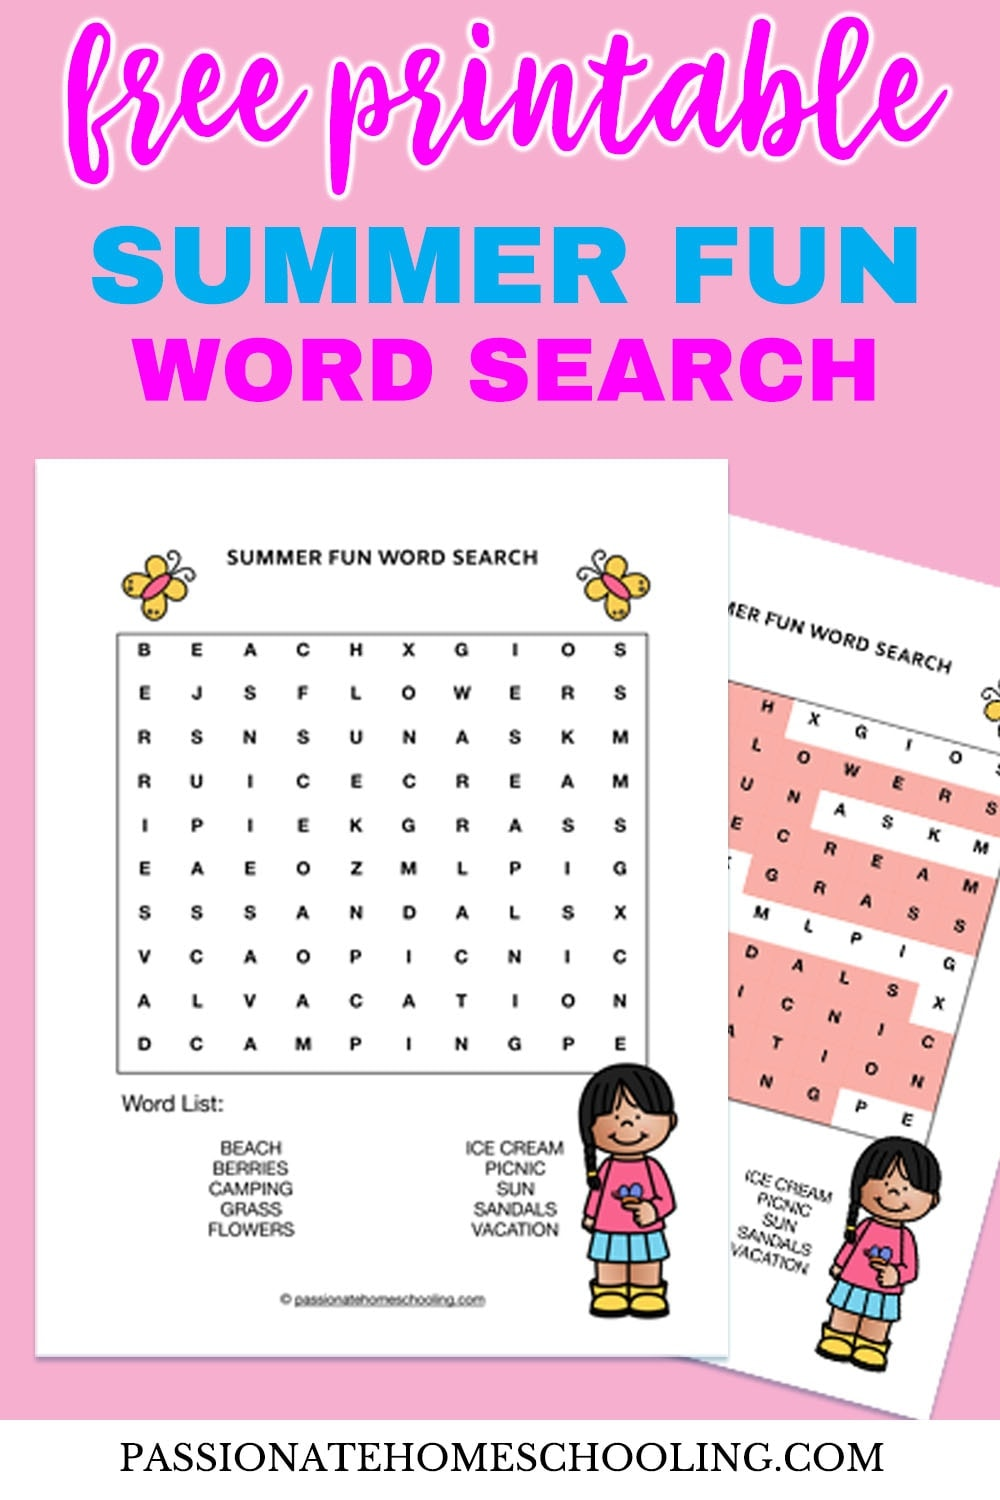 photo about Free Printable Word Search for Kids referred to as Cost-free Printable Summertime Exciting Term Seem - Pionate Homeschooling